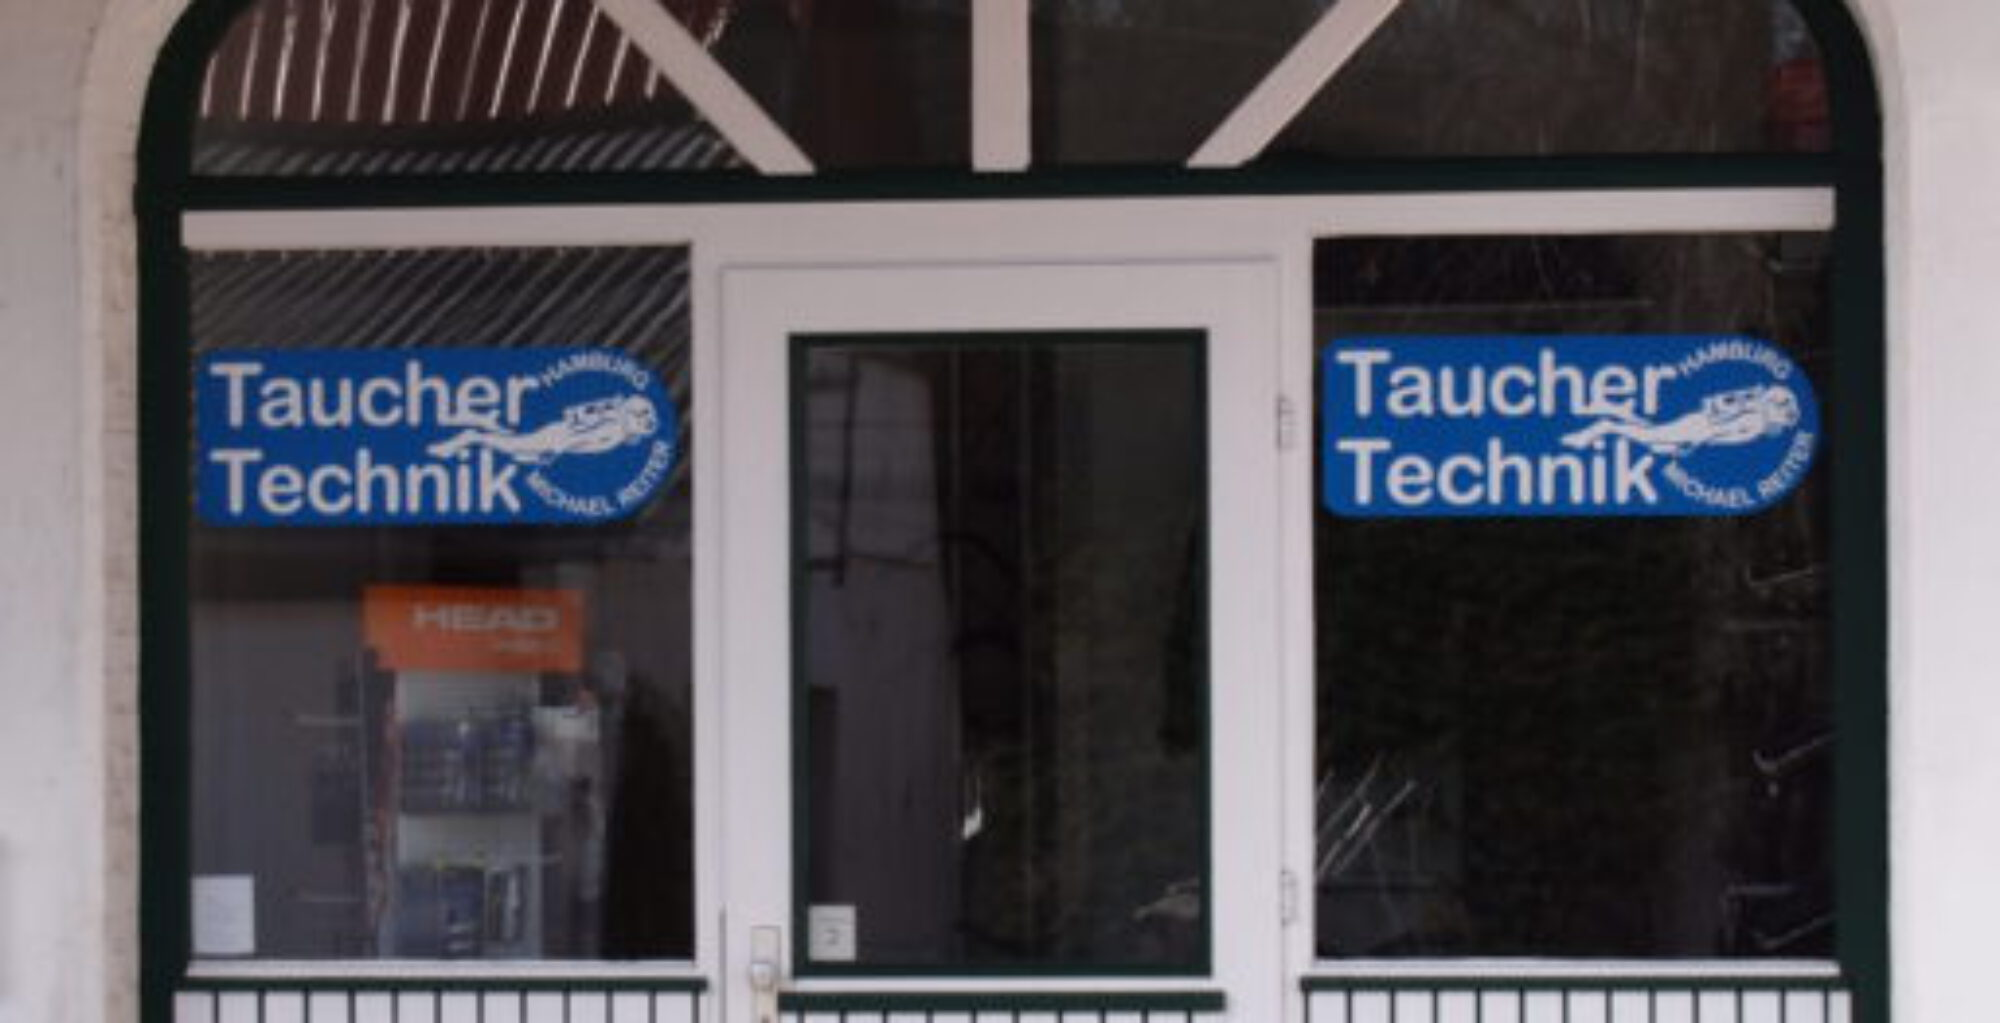 Taucher Technik Hamburg